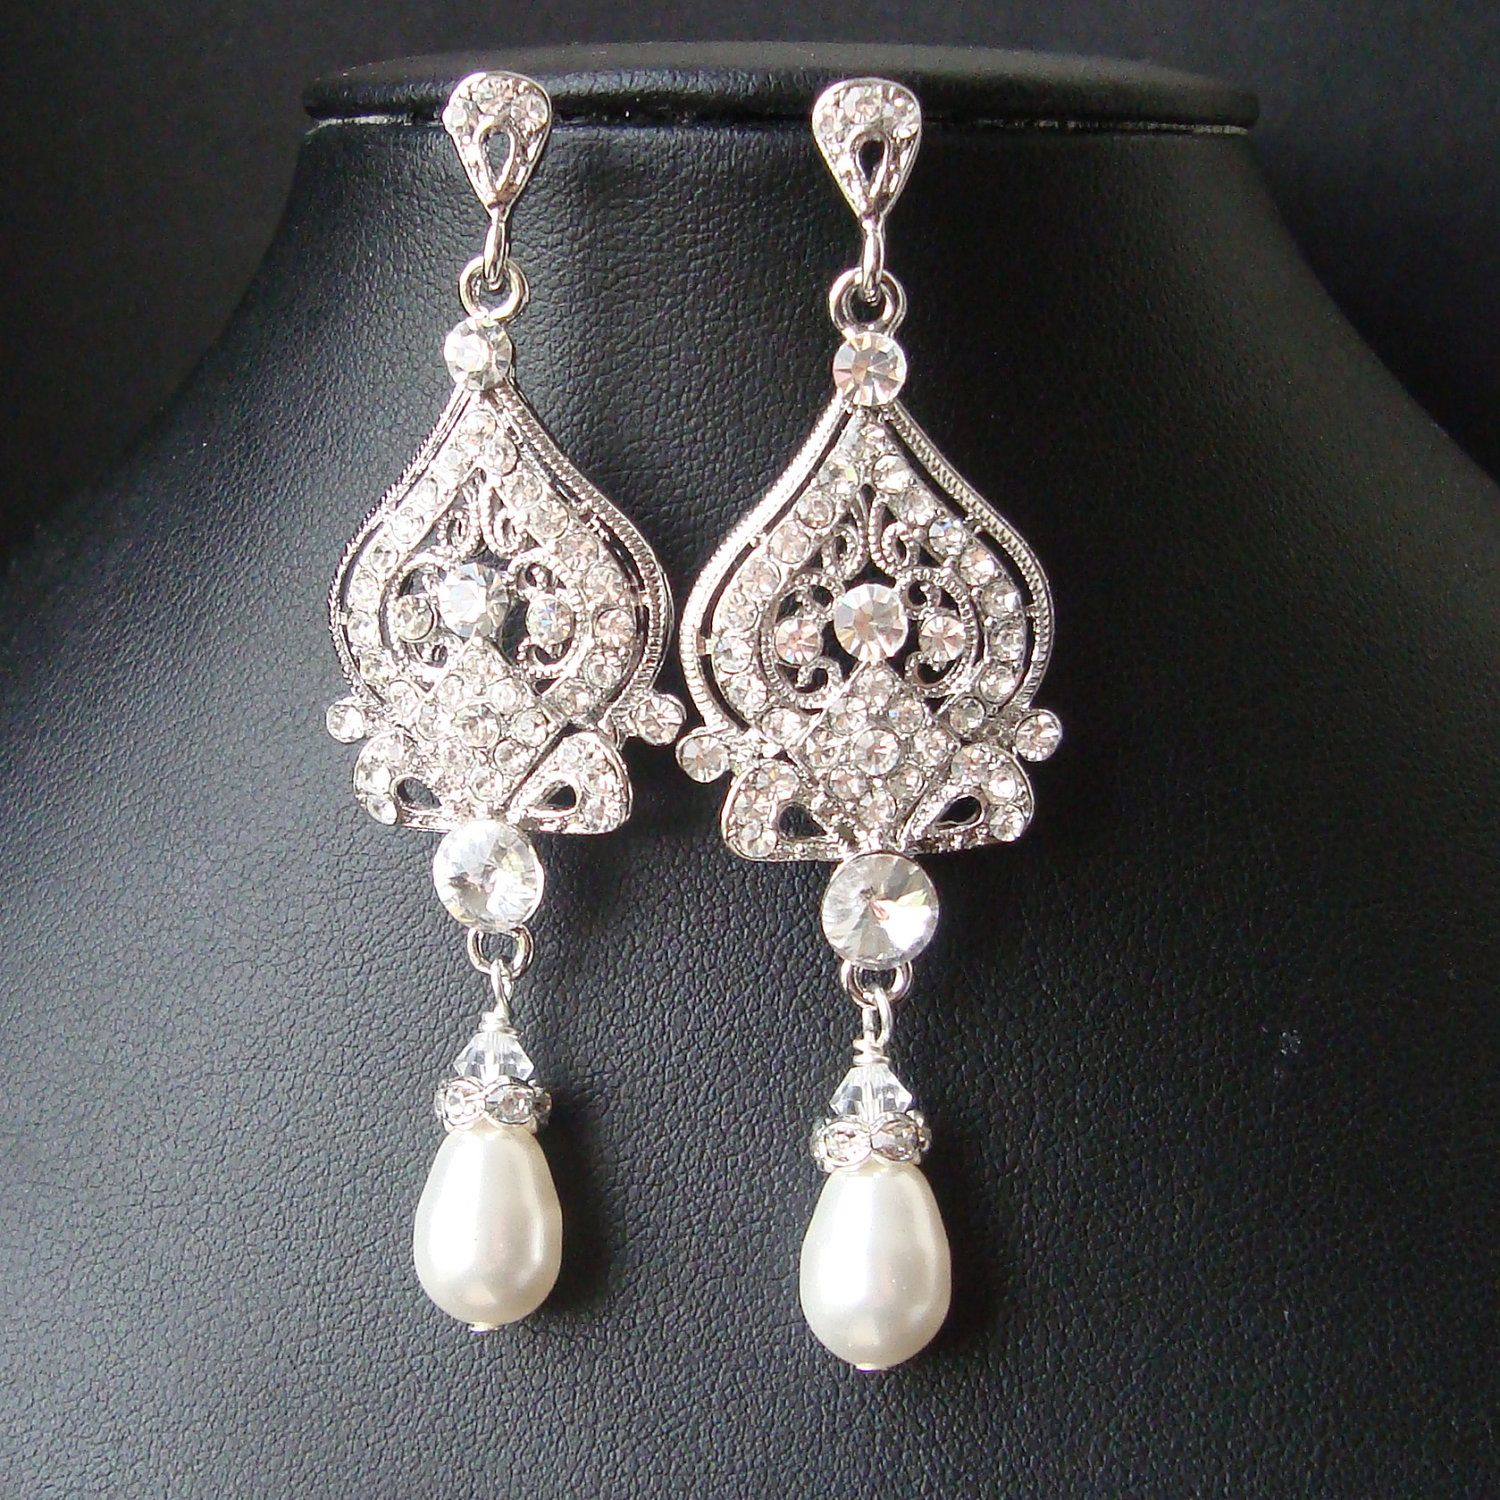 Chandelier bridal earrings vintage wedding earrings pearl drops chandelier bridal earrings vintage wedding earrings pearl drops art deco bridal jewelry old hollywood wedding jewelry jacqueline arubaitofo Choice Image